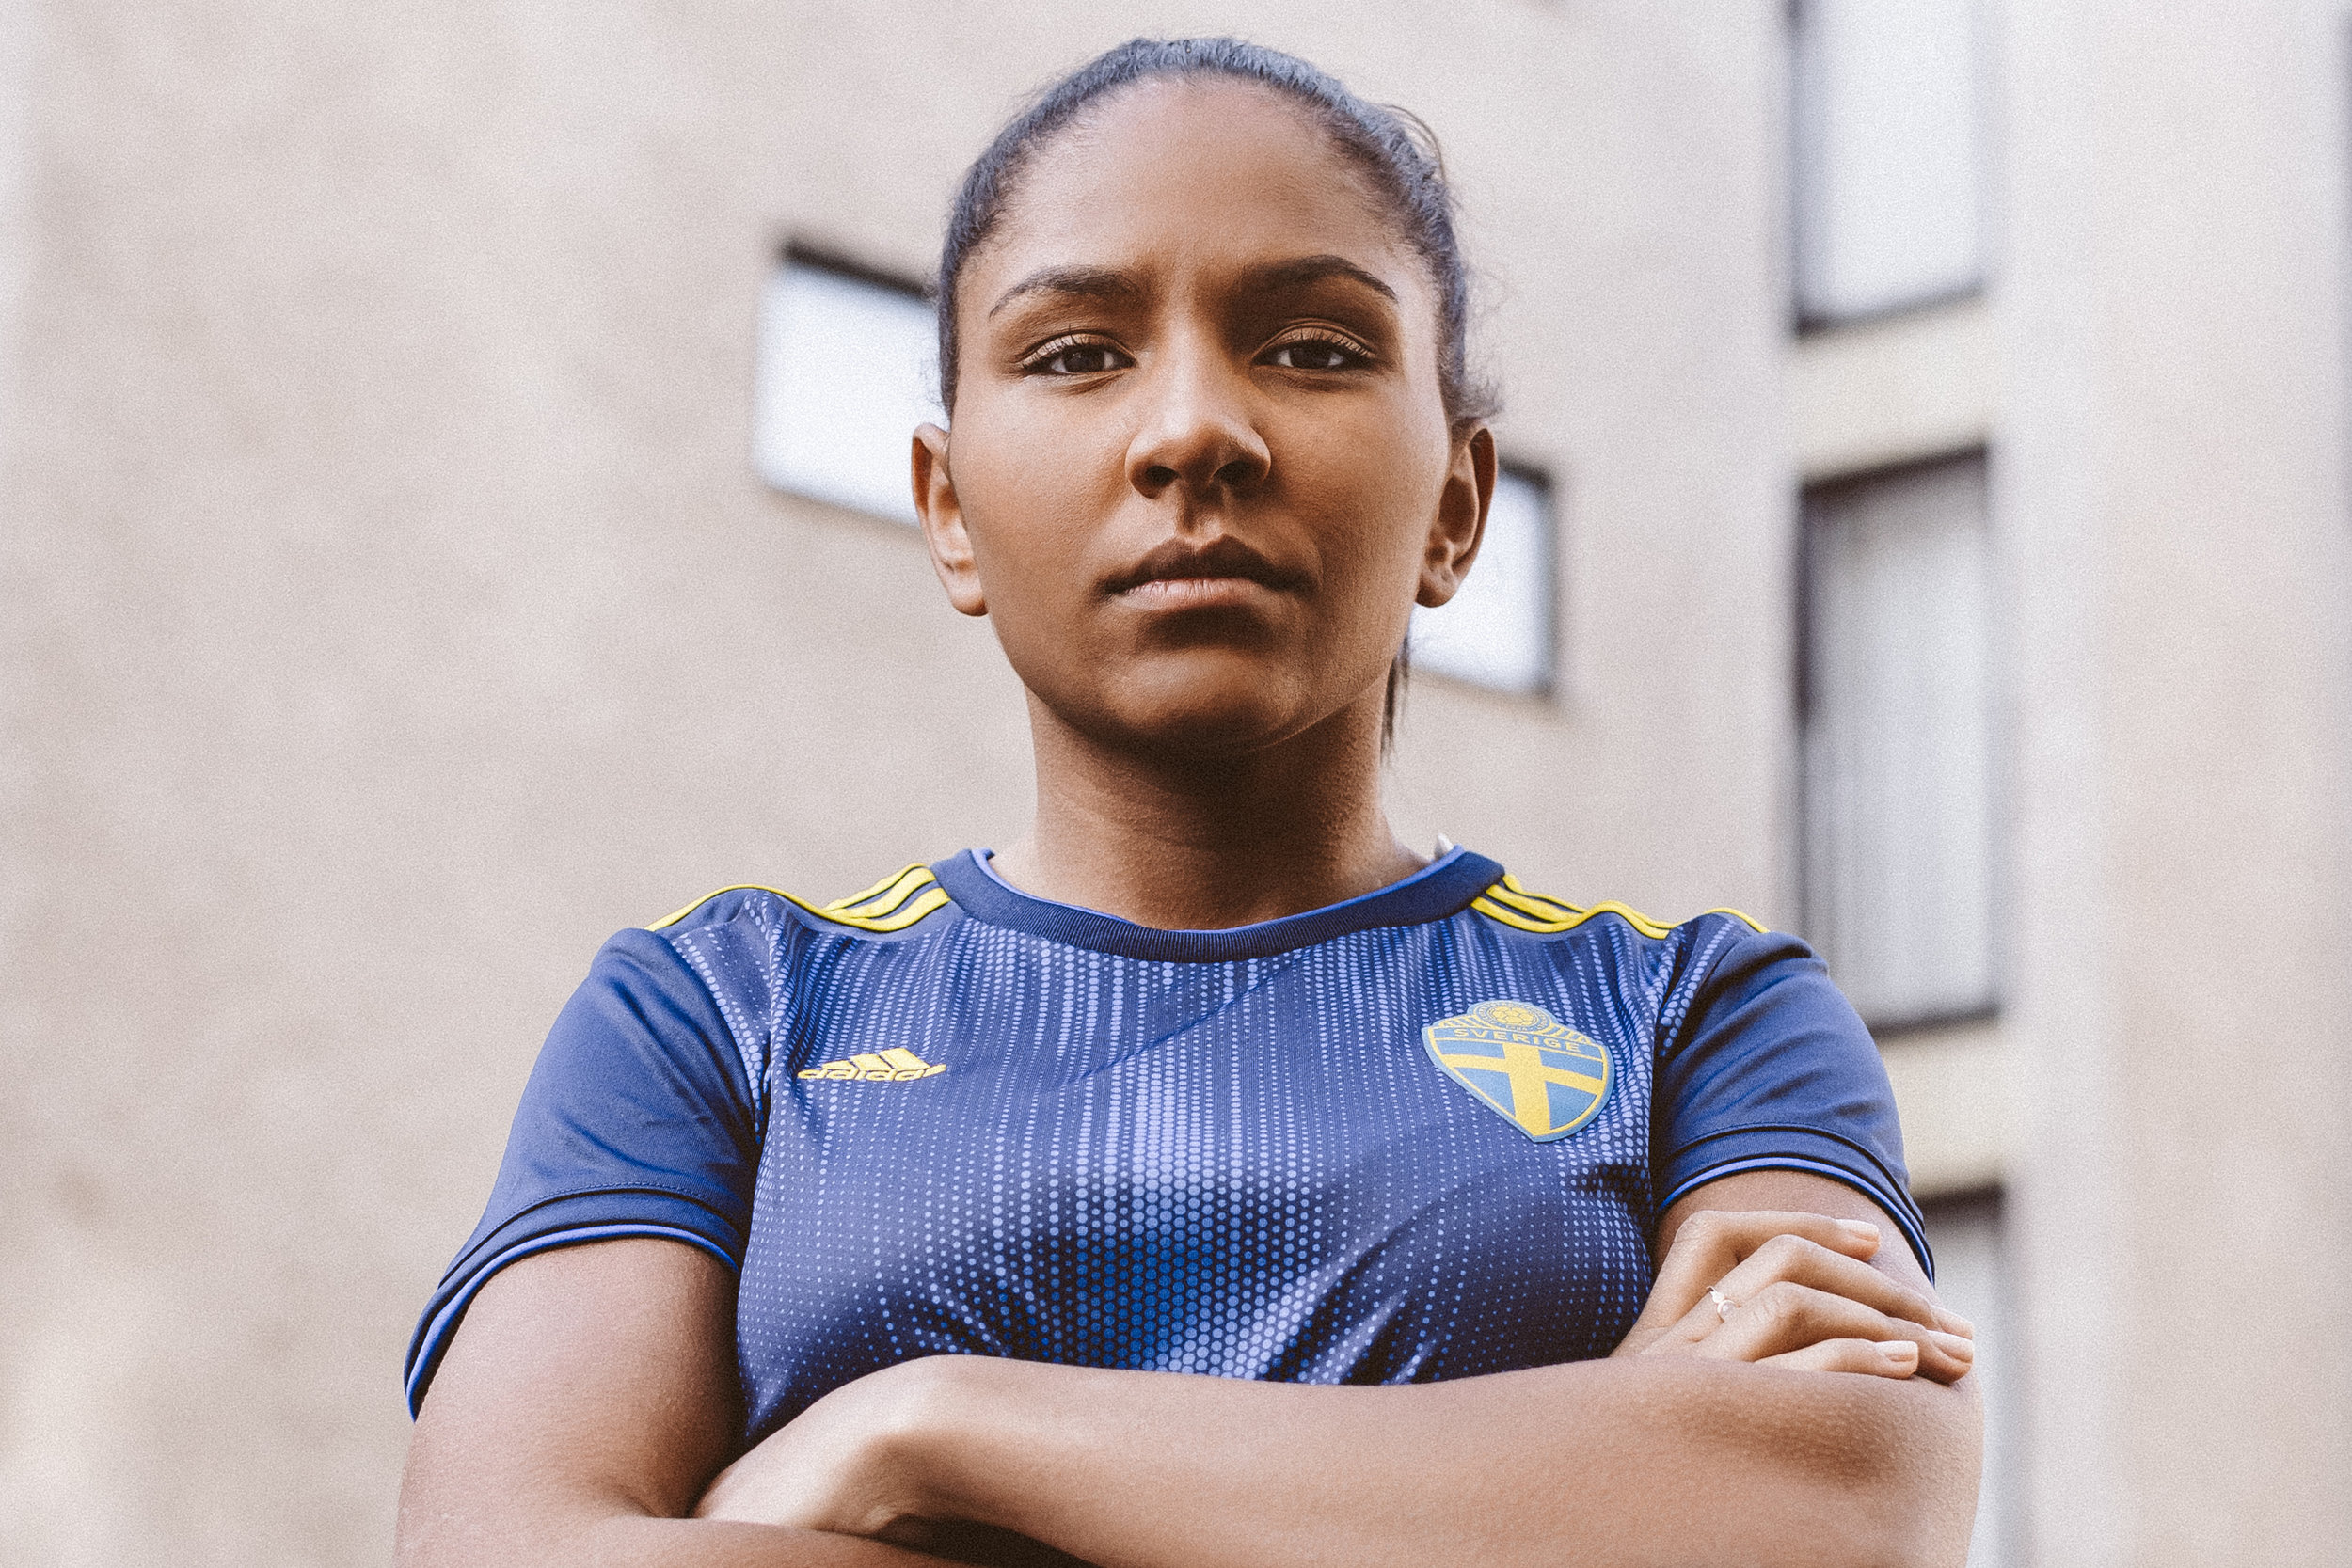 + ADIDAS +FIFA WORLD CUPWOMENS JERSEY - Now is the official FIFA WORLD CUP jersey for the Swedish Women's National Team live! so check out the world cup team players that's ride with ADIDAS in the home and away jerseys.+ Posted April 2019 +